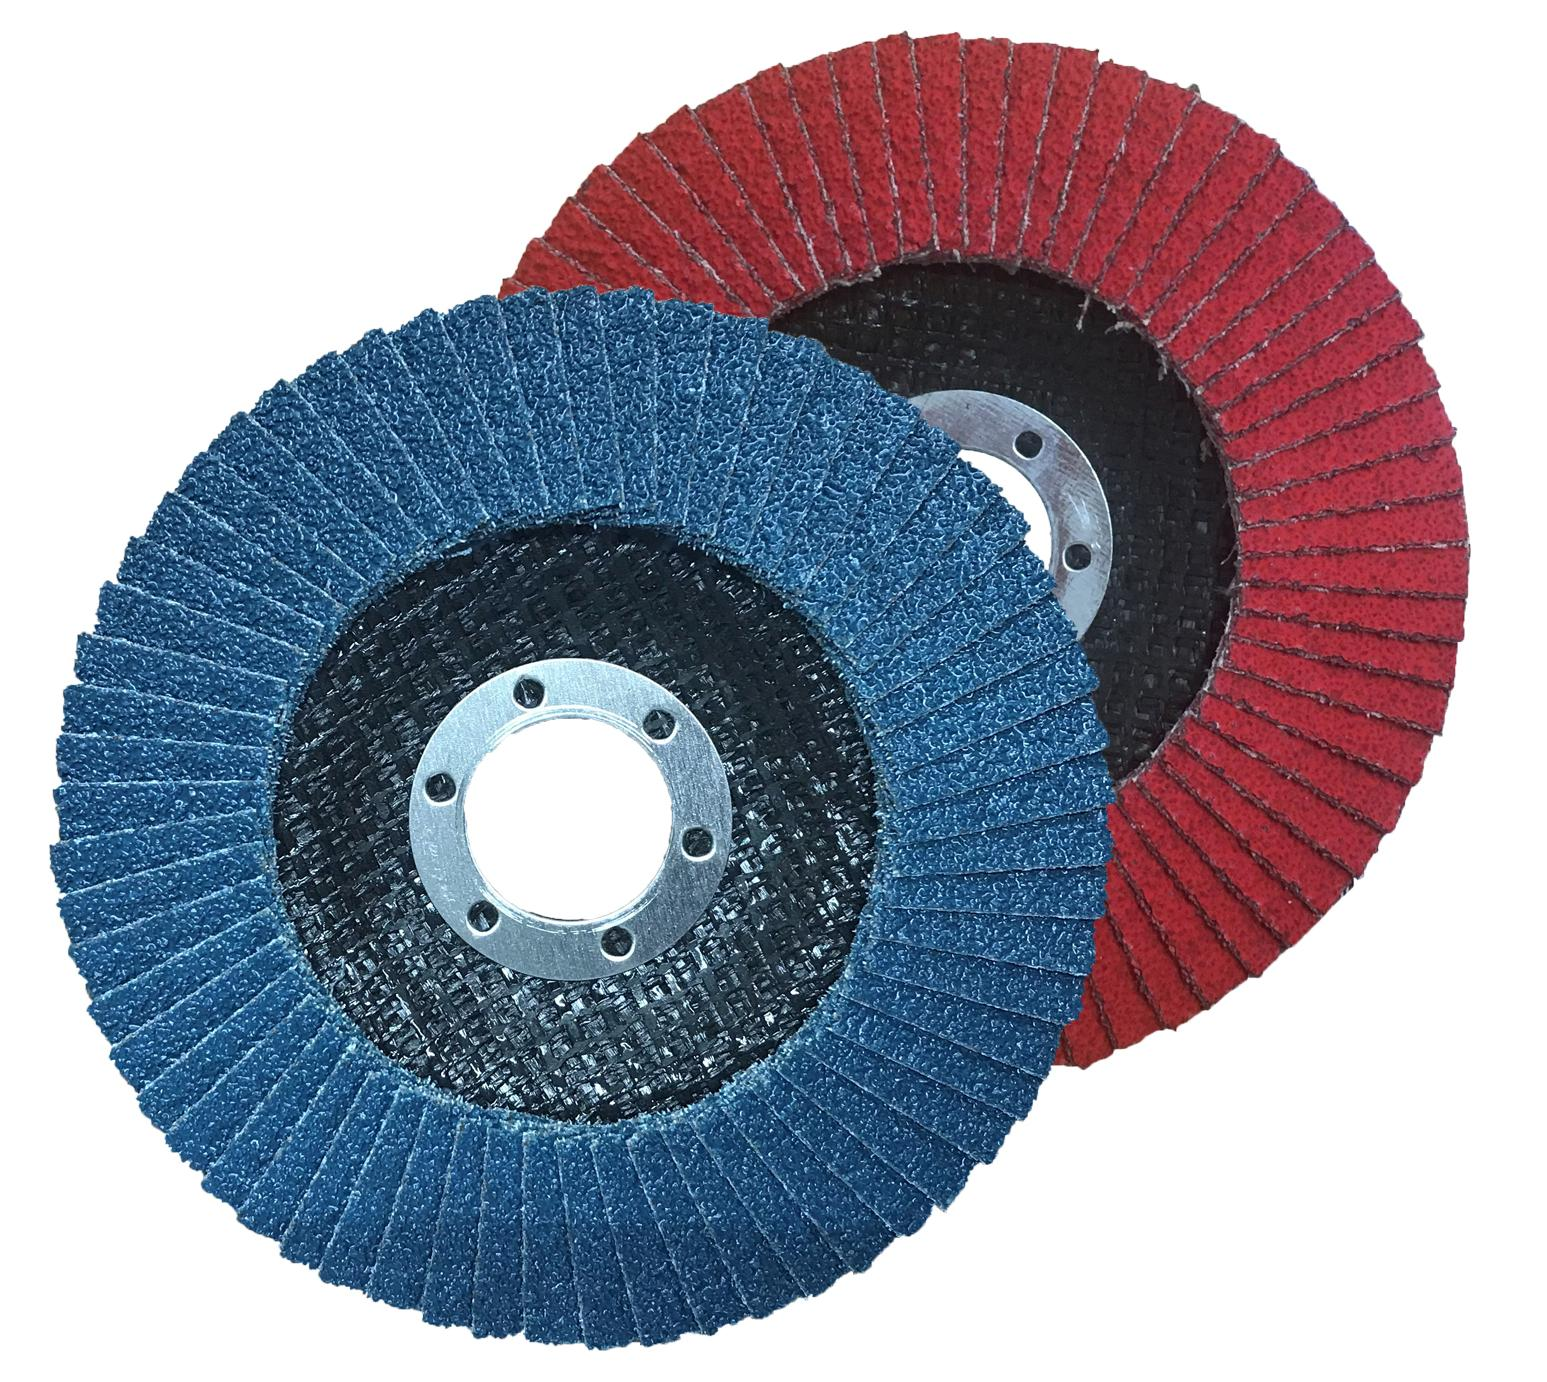 FSC Zirconia flap disc and the FHCC Ceramic flap disc provide high quality finishing on stainless steel, steel and aluminium.